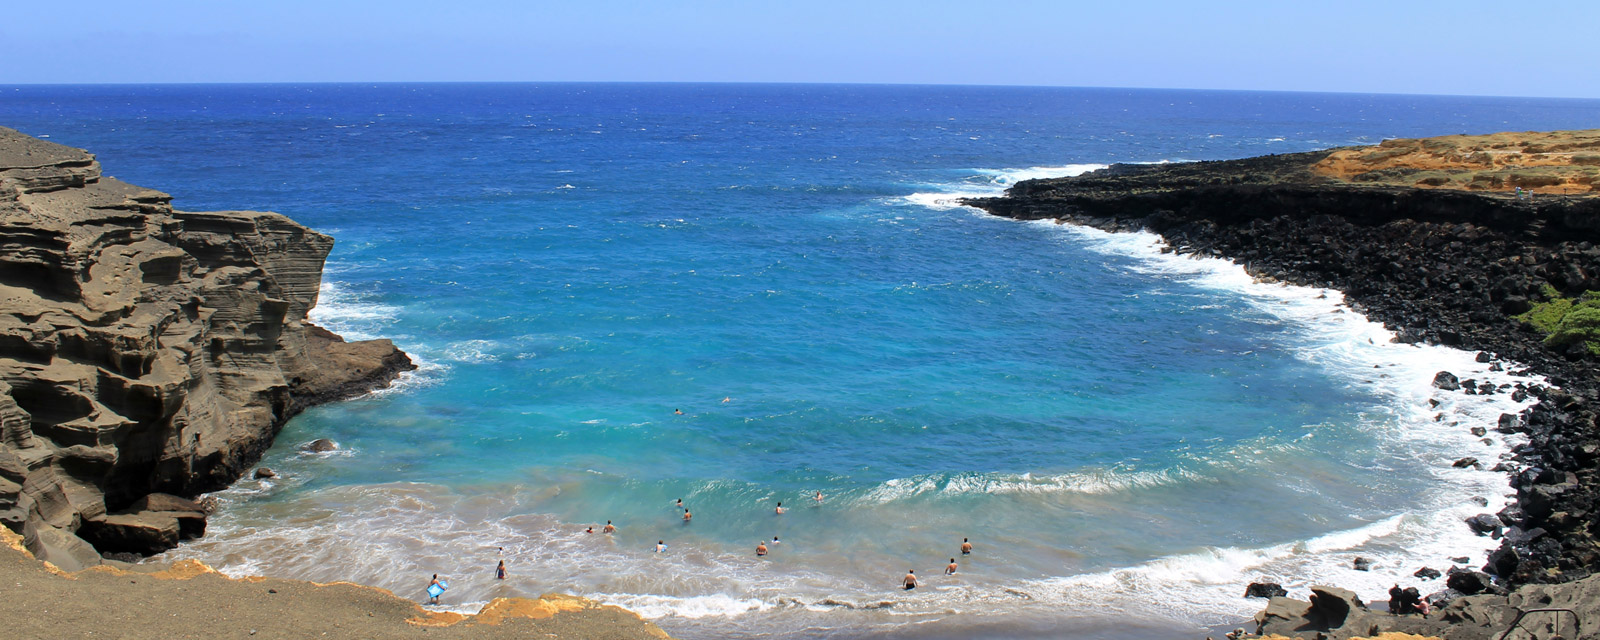 Banner photo showing a Hawaiian beach